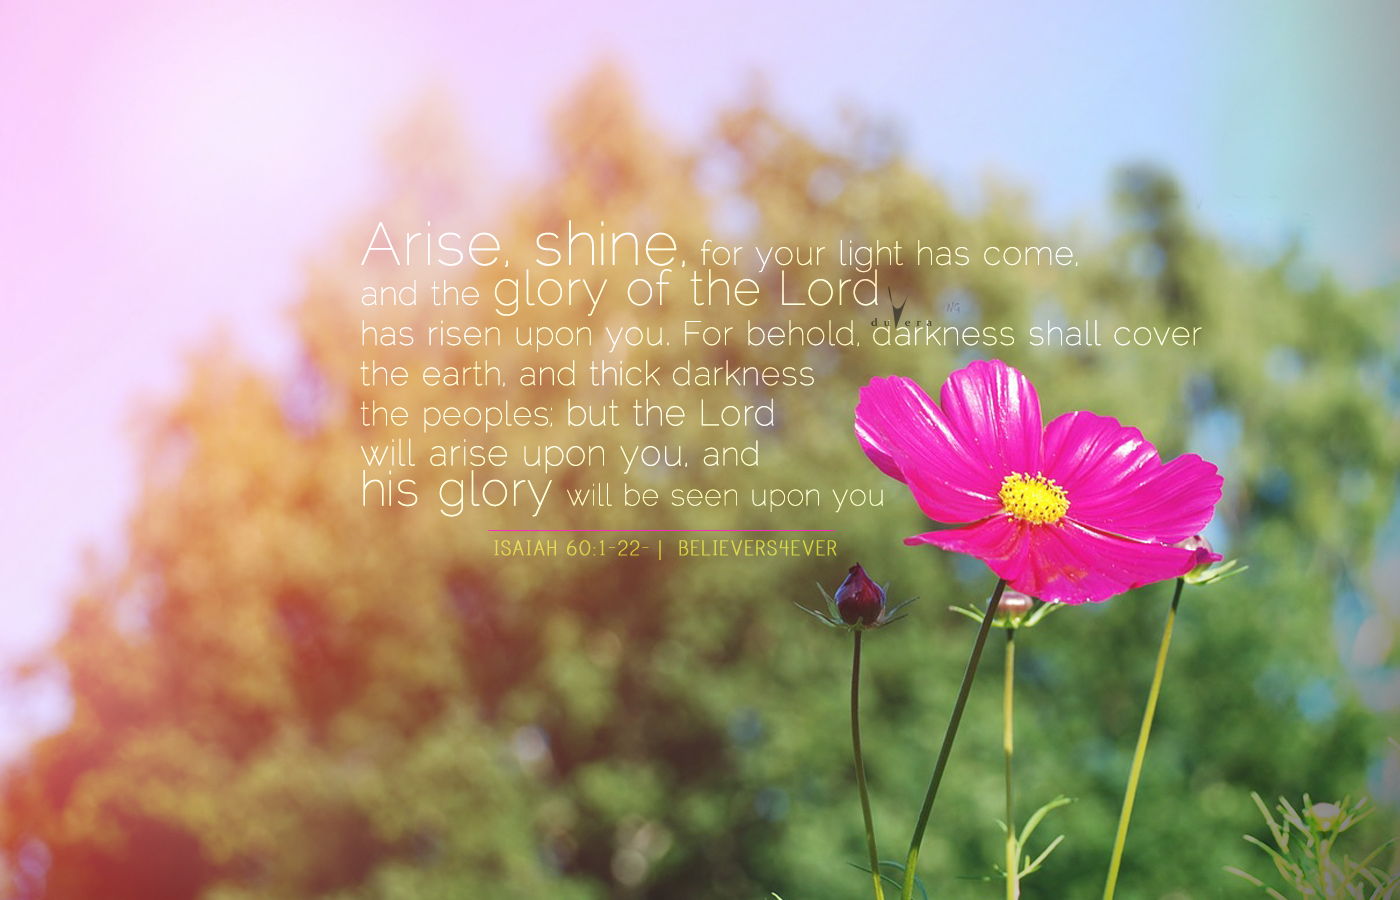 Girly Christian Desktop Backgrounds Images & Pictures - Becuo